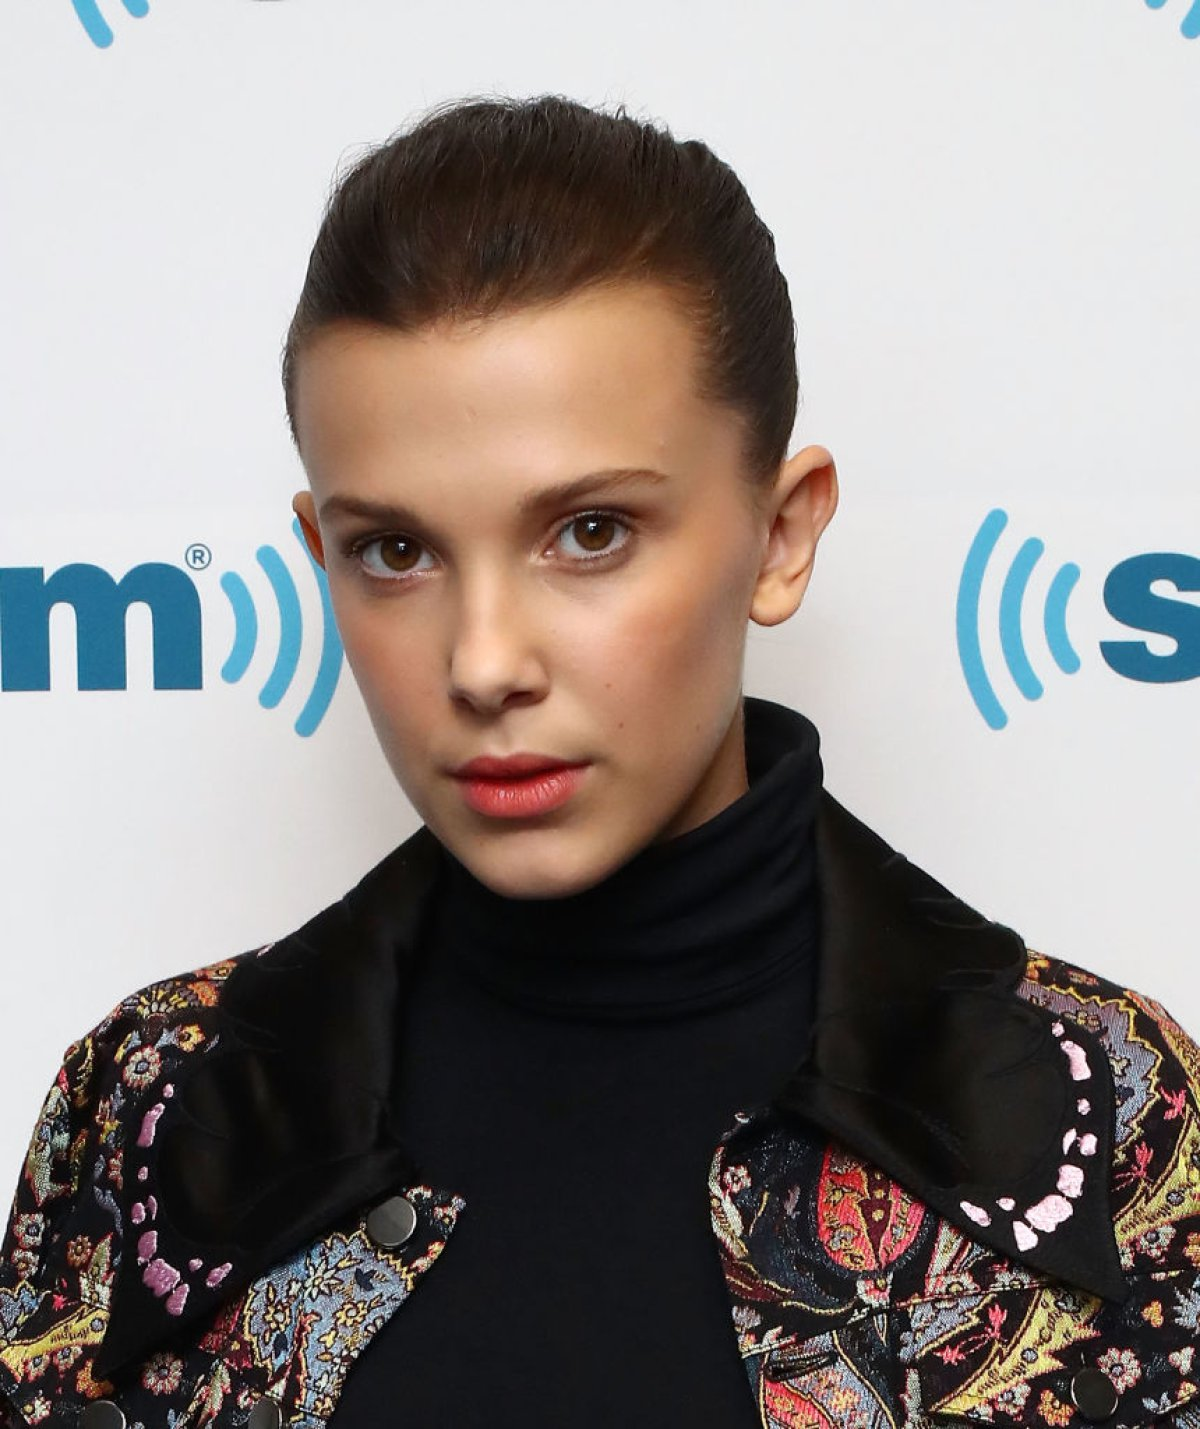 Millie Bobby Brown de Strager Things confiesa que ama a las Kardashian